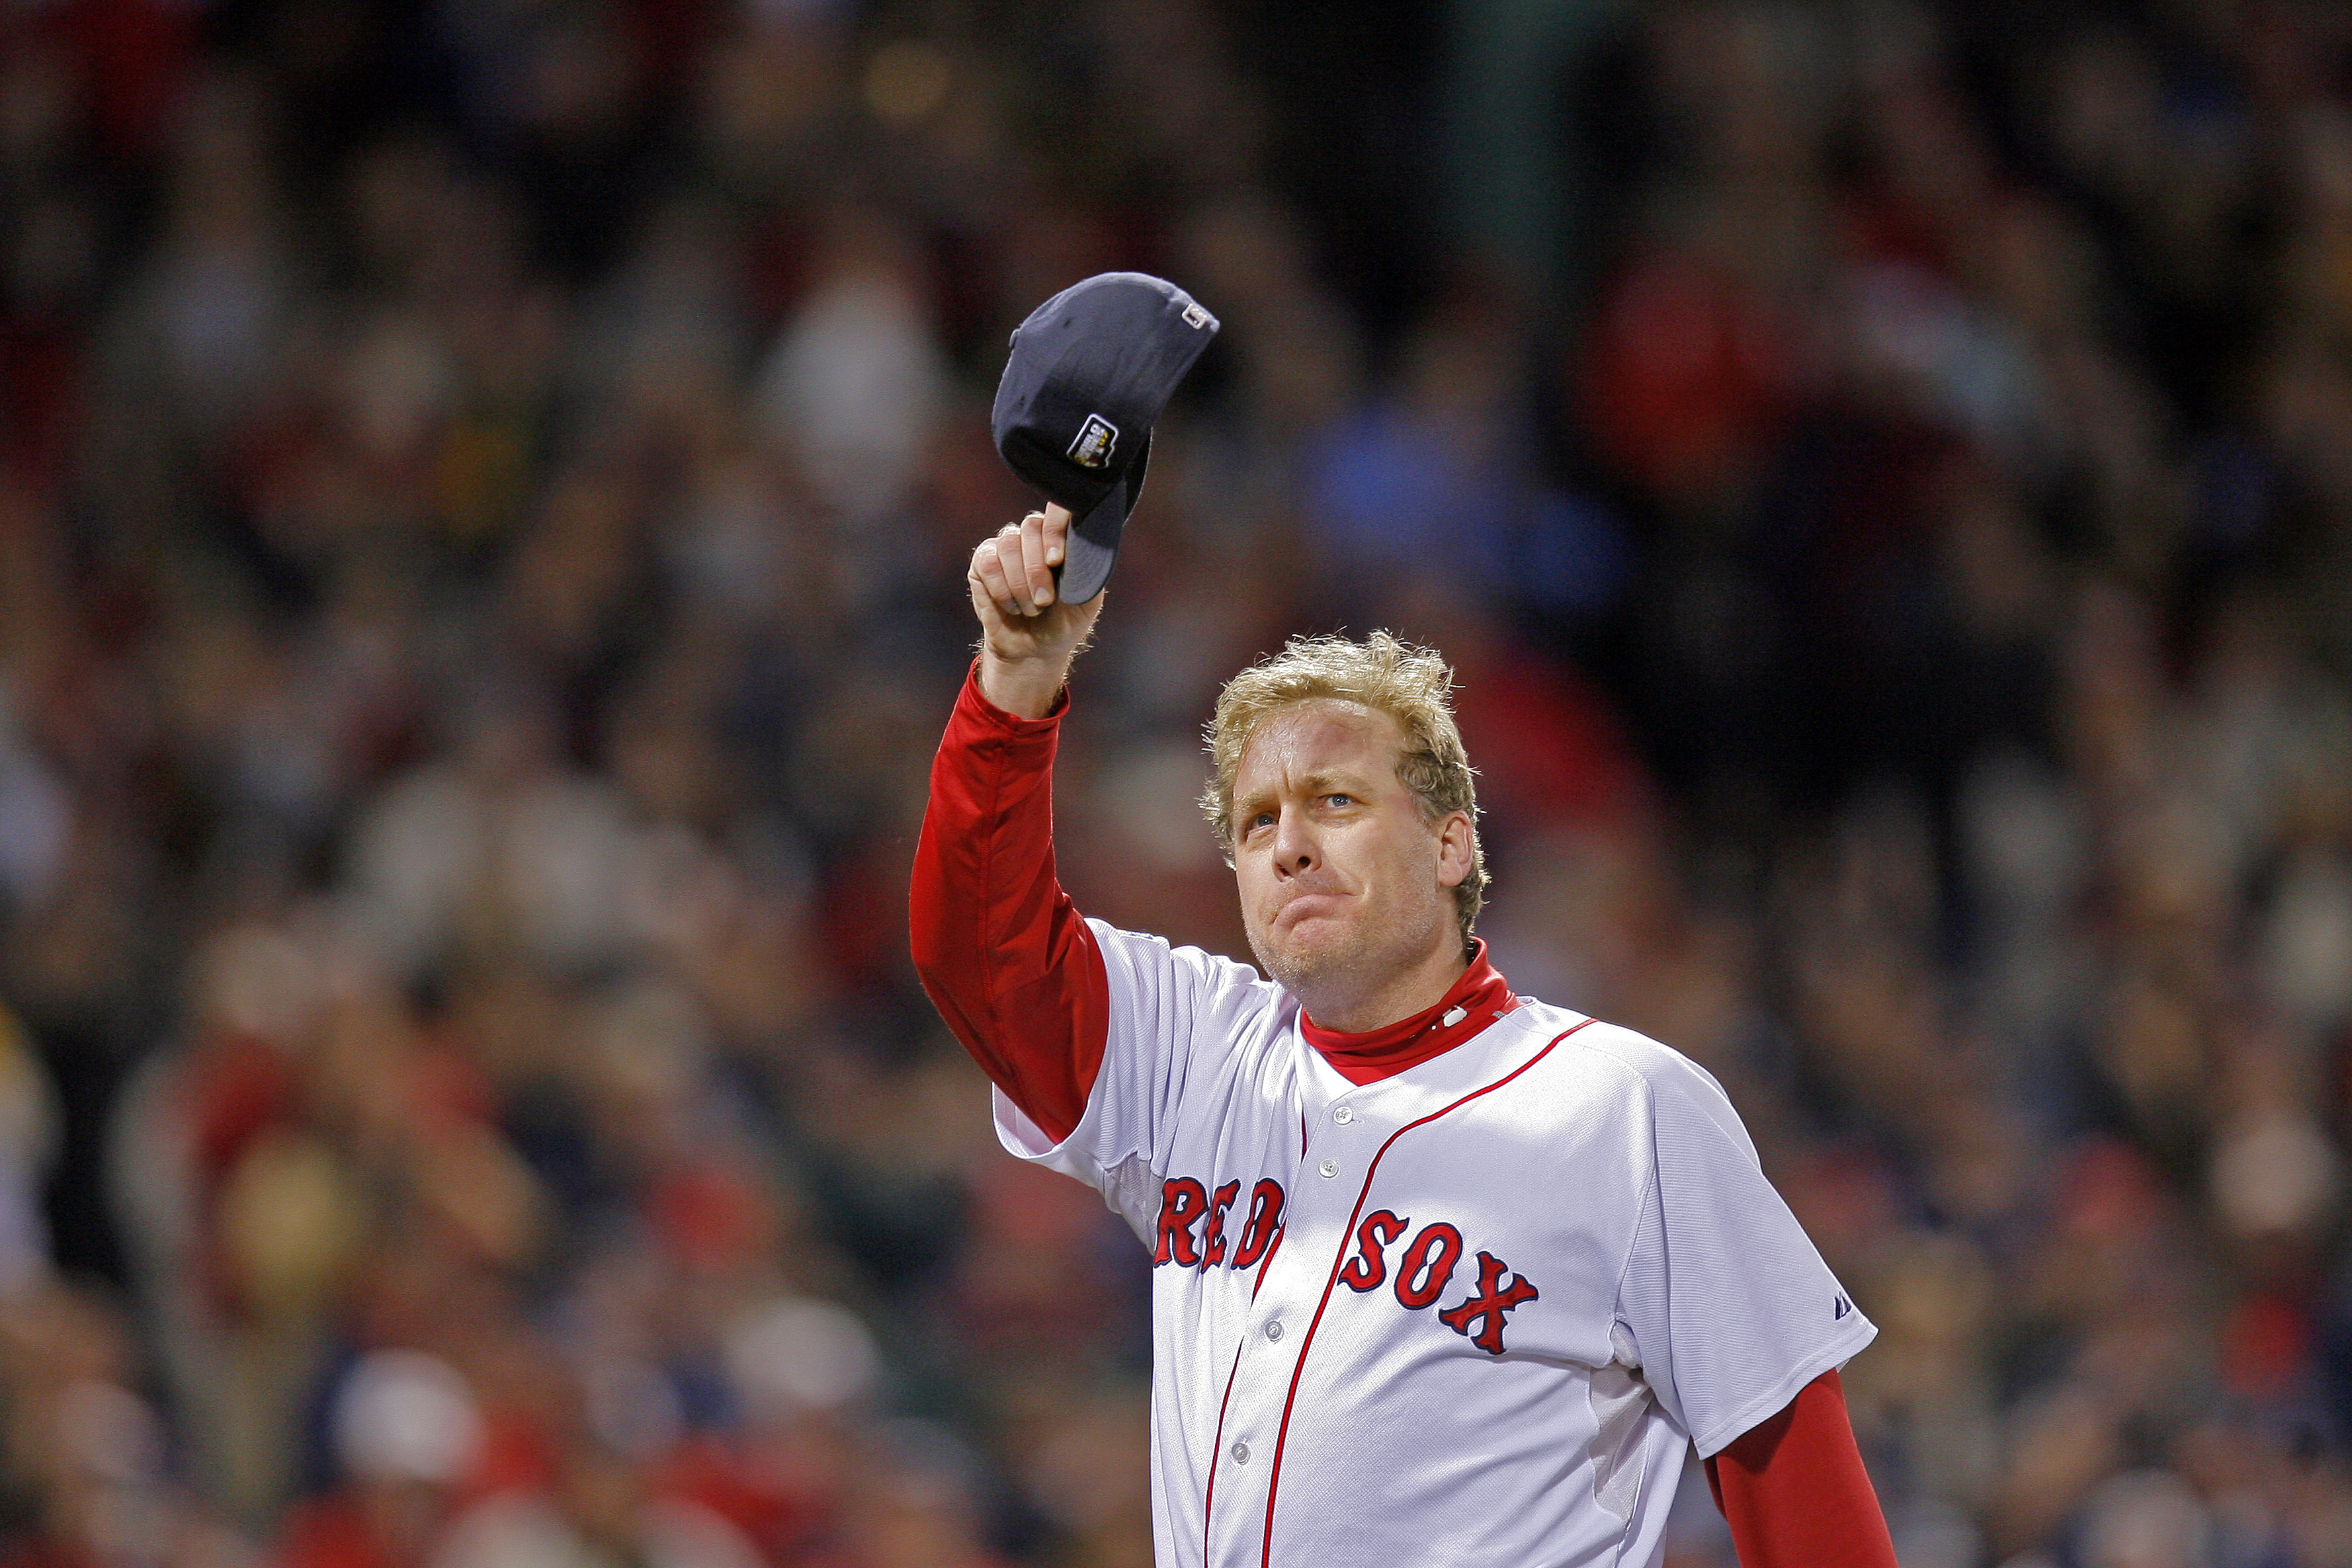 Former Boston Red Sox star pitcher Curt Schilling doesn't have much time left on the Hall of Fame ballot. It is time for Schilling to earn his plaque.